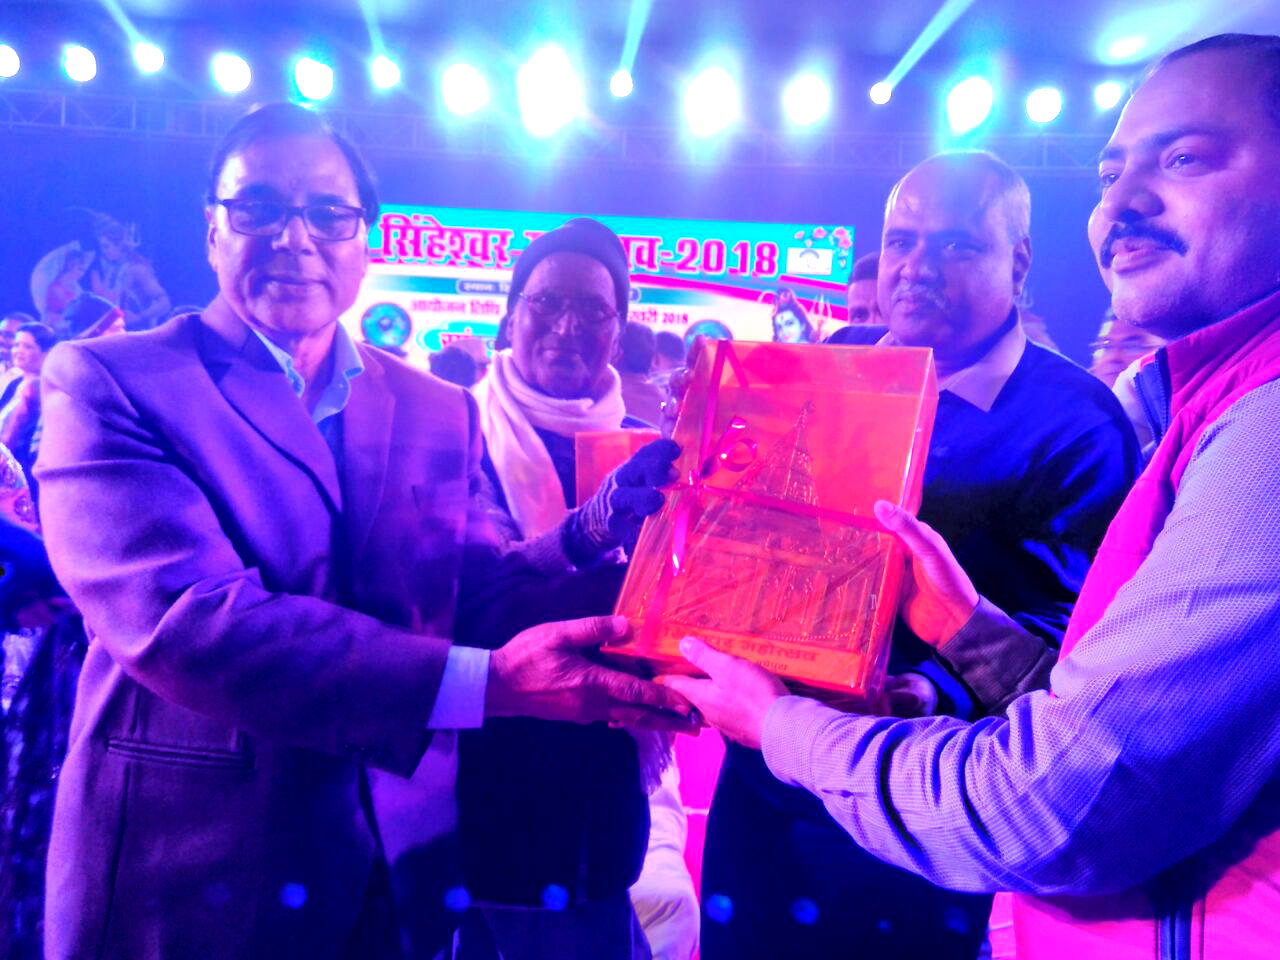 Samajsevi Dr.Bhupendra Madhepuri , President Awardee Prof.Y.N.Yadav and DDC Mukesh Kumar giving momento to NDC Rajneesh Roy for the best arrangements of Singheshwar Mahotsav 2018.